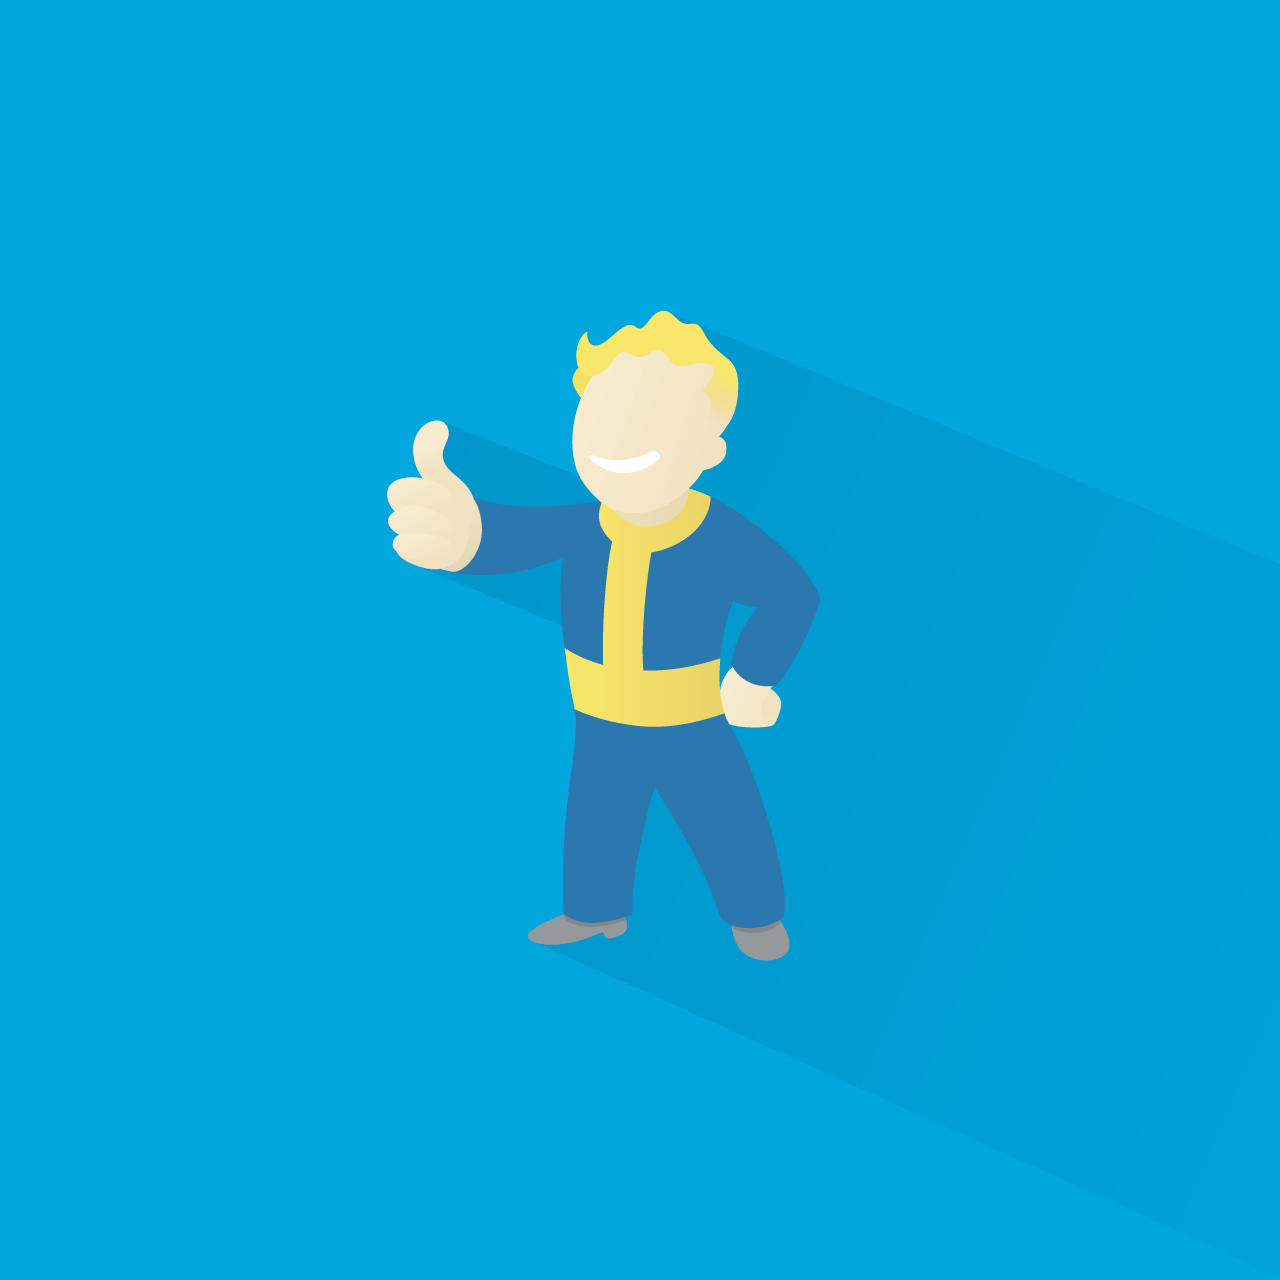 Thumbs Up For The Vault Boy Illustration By Brian Le Normand Www Brianlenormand Com Fallout Besthesda Bethesday Vaultboy Design Fla Fondo Pantalla